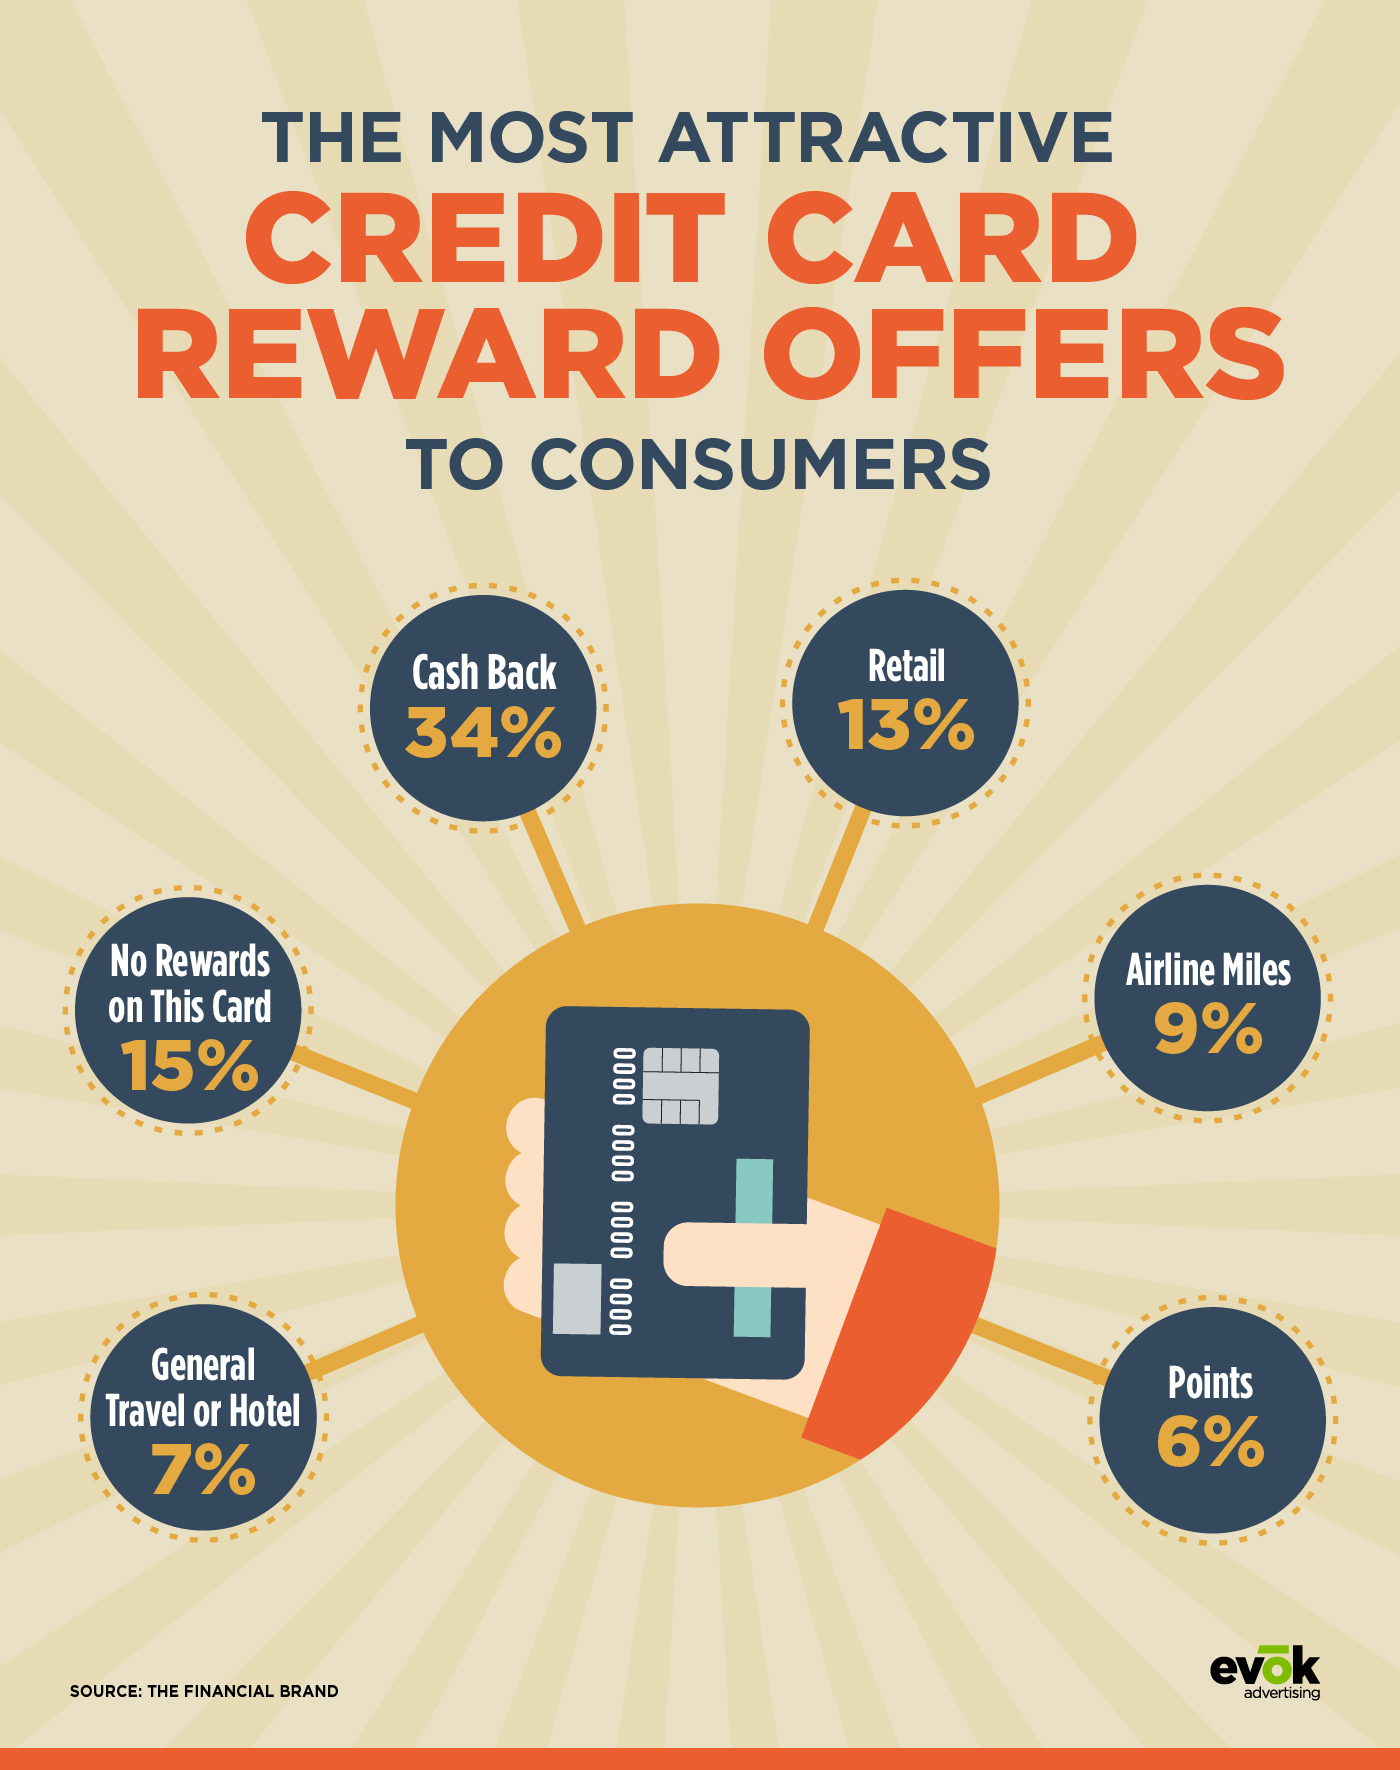 The Most Attractive Credit Card Reward Offers